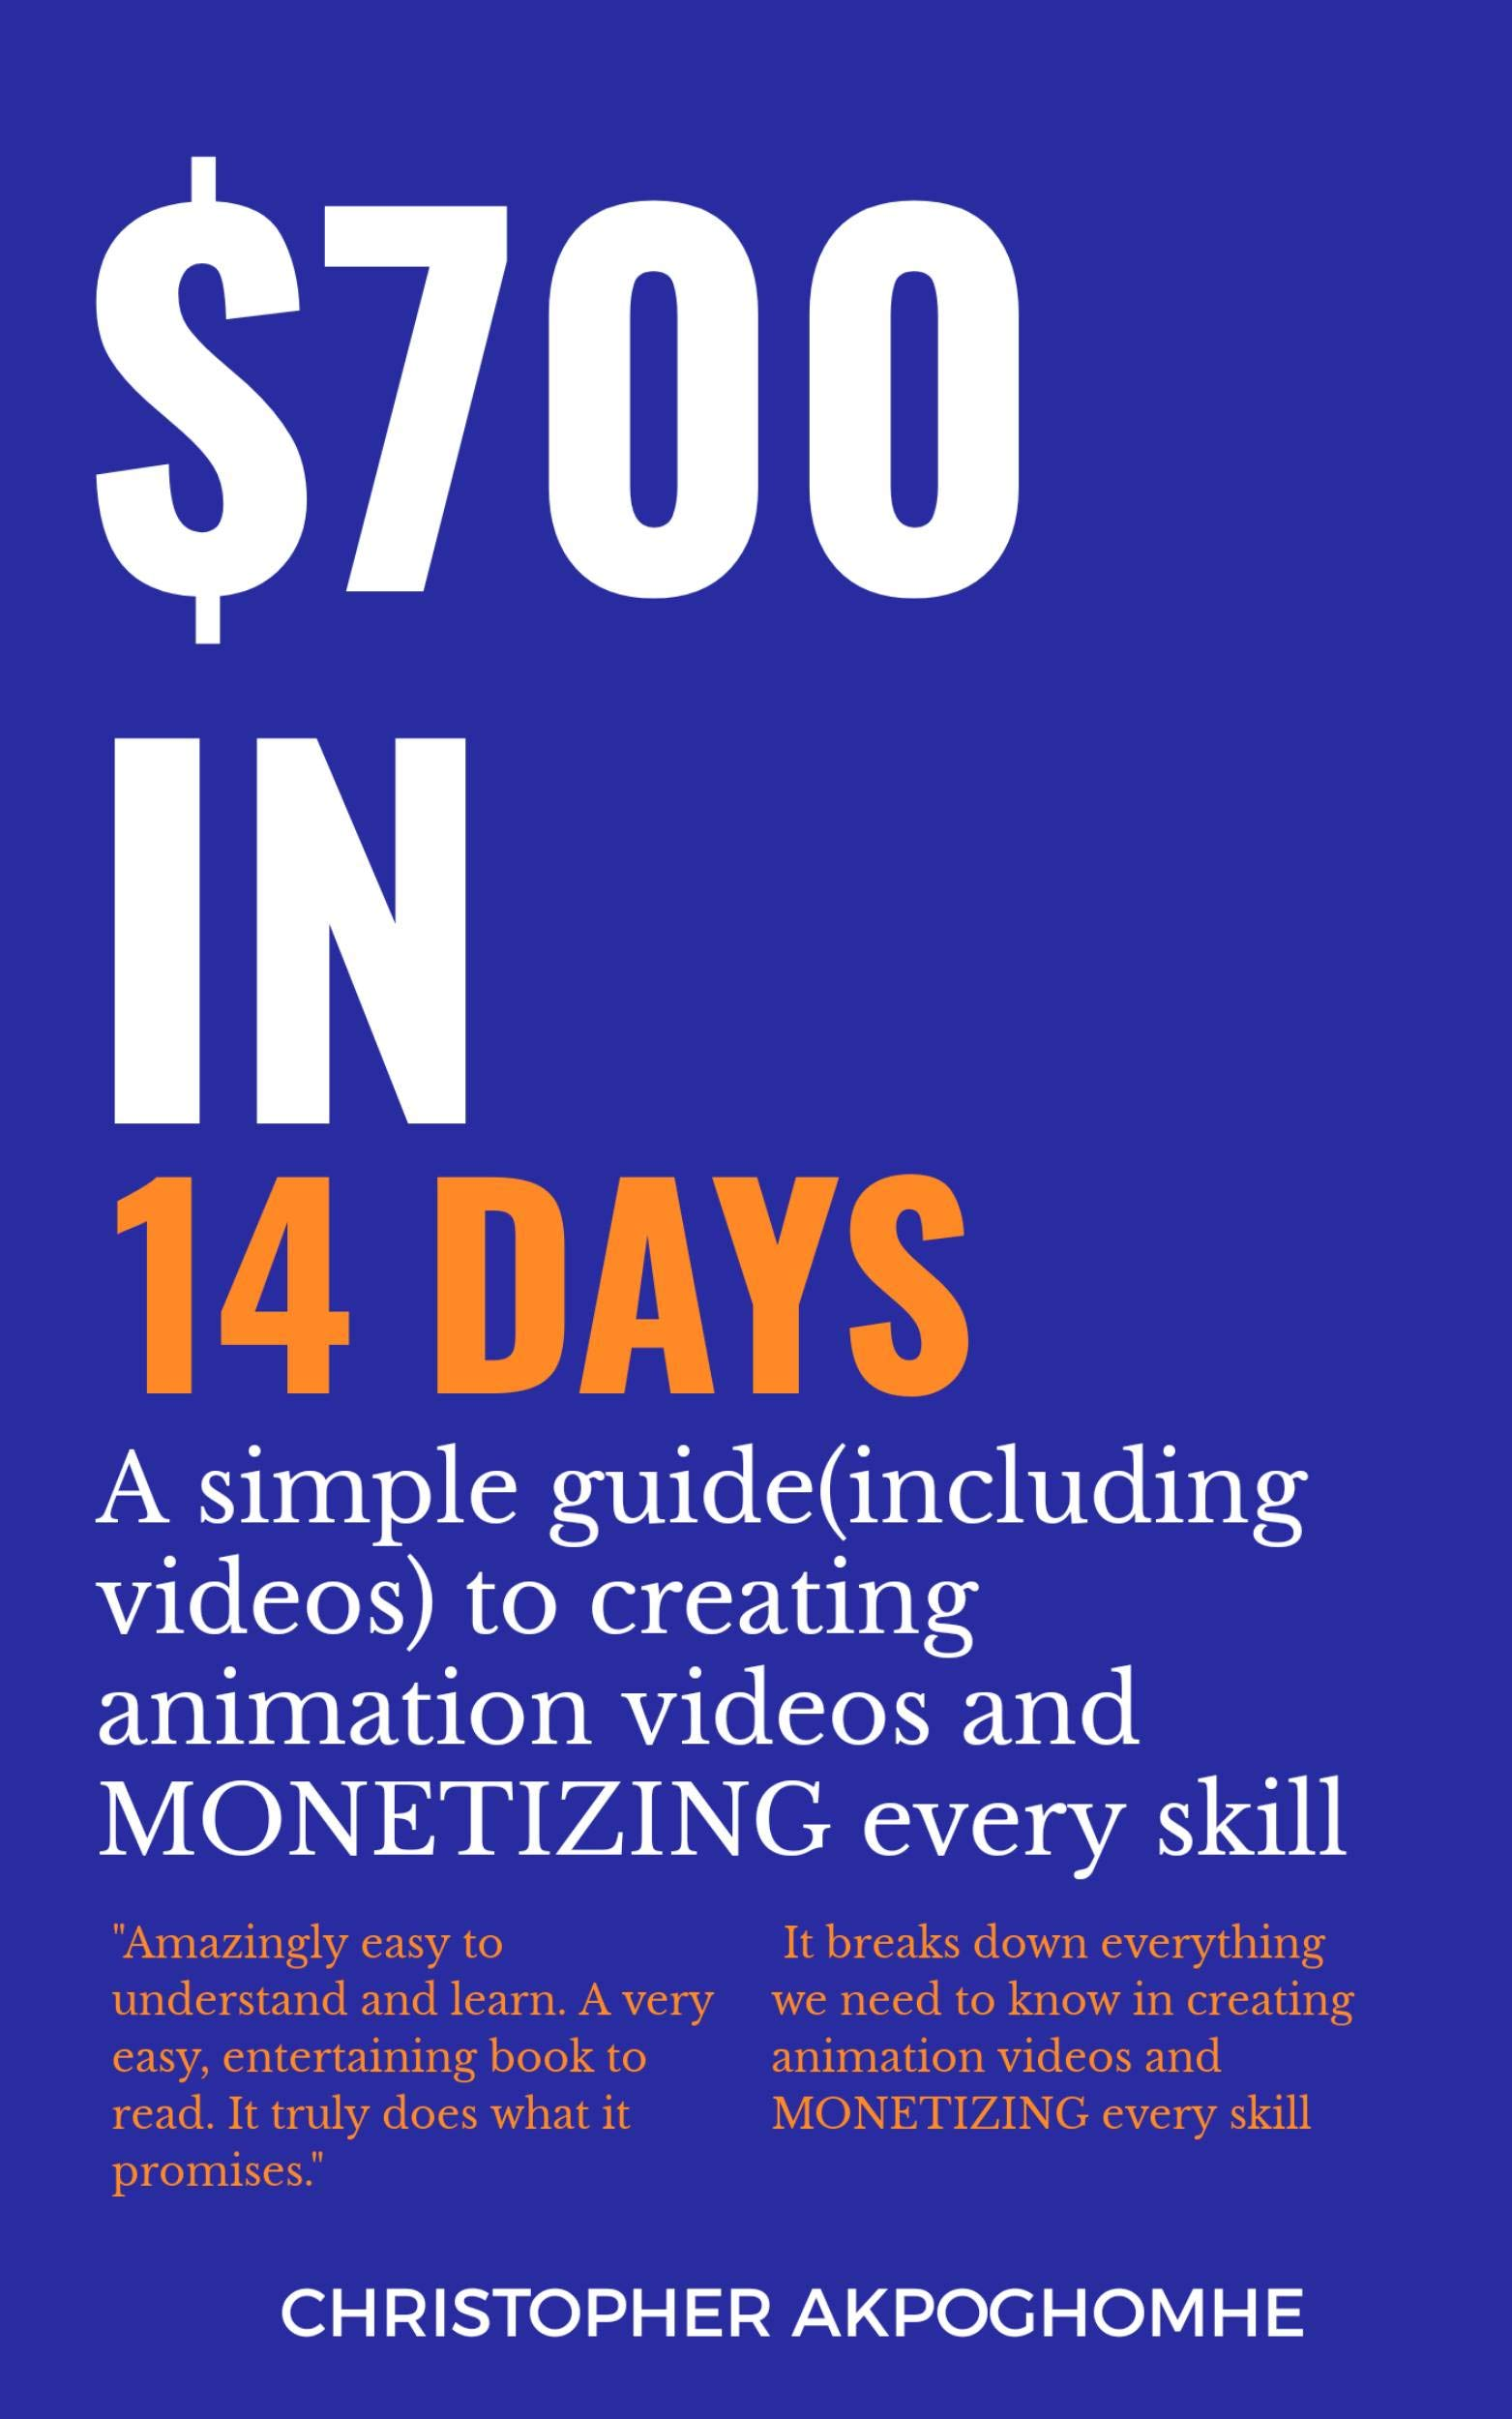 $700 IN 14 DAYS: A simple guide (including videos) on creating animation videos and MONETIZING every skill